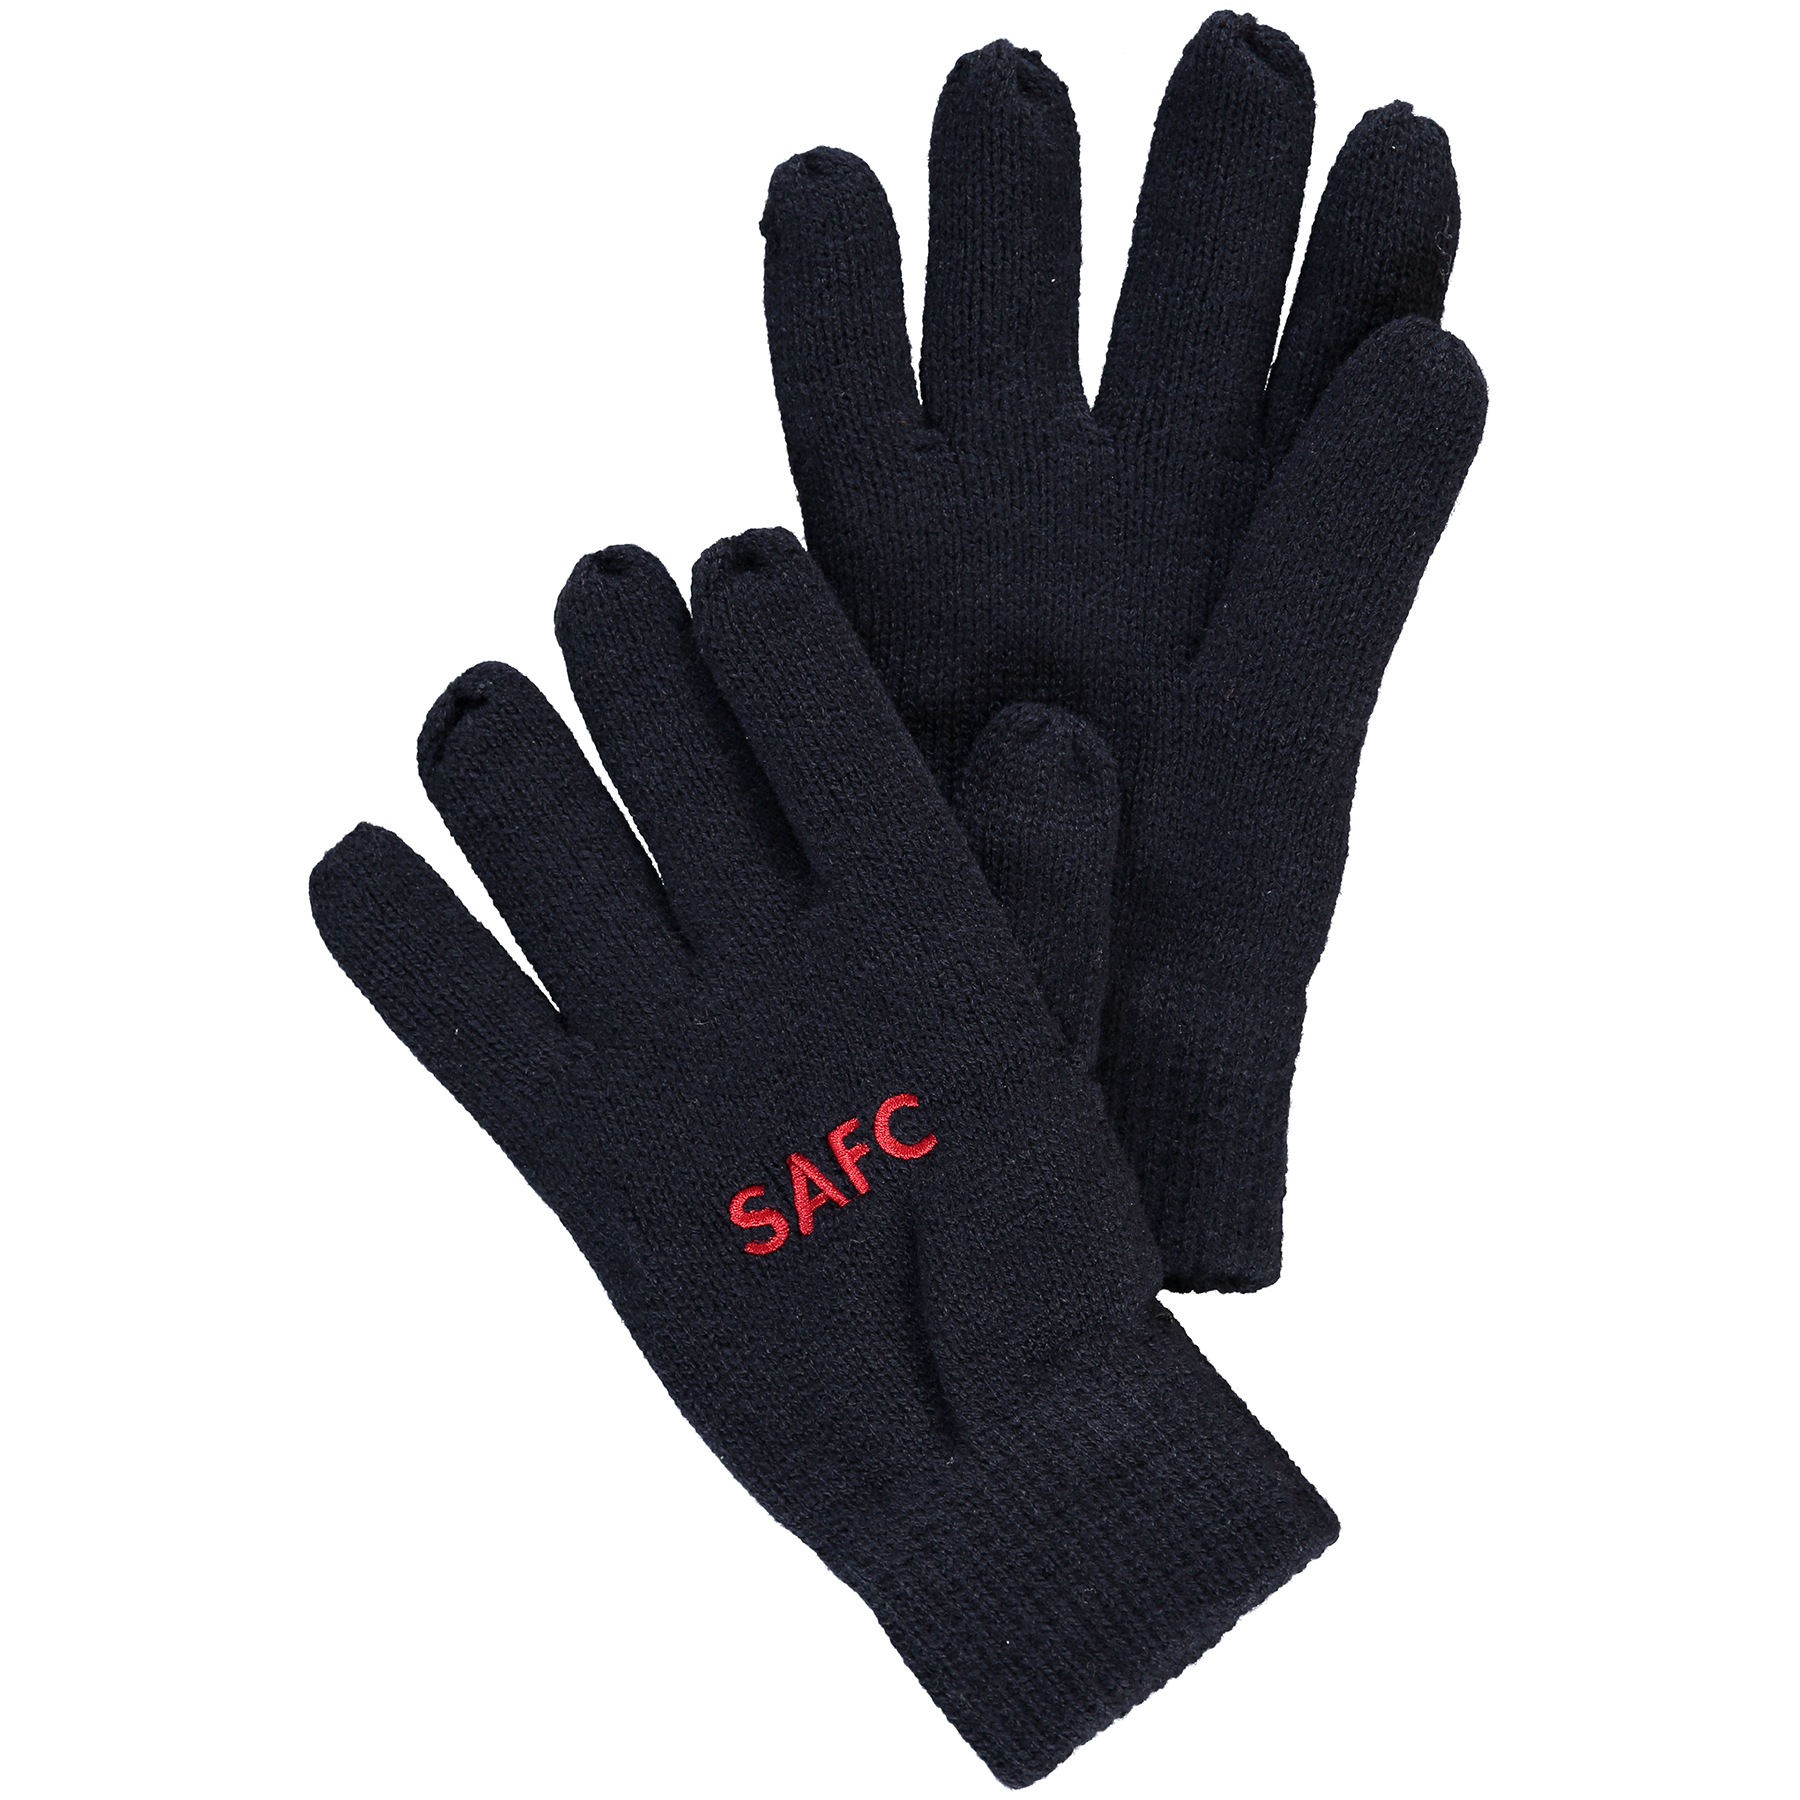 Sunderland Glove - Navy - Adult